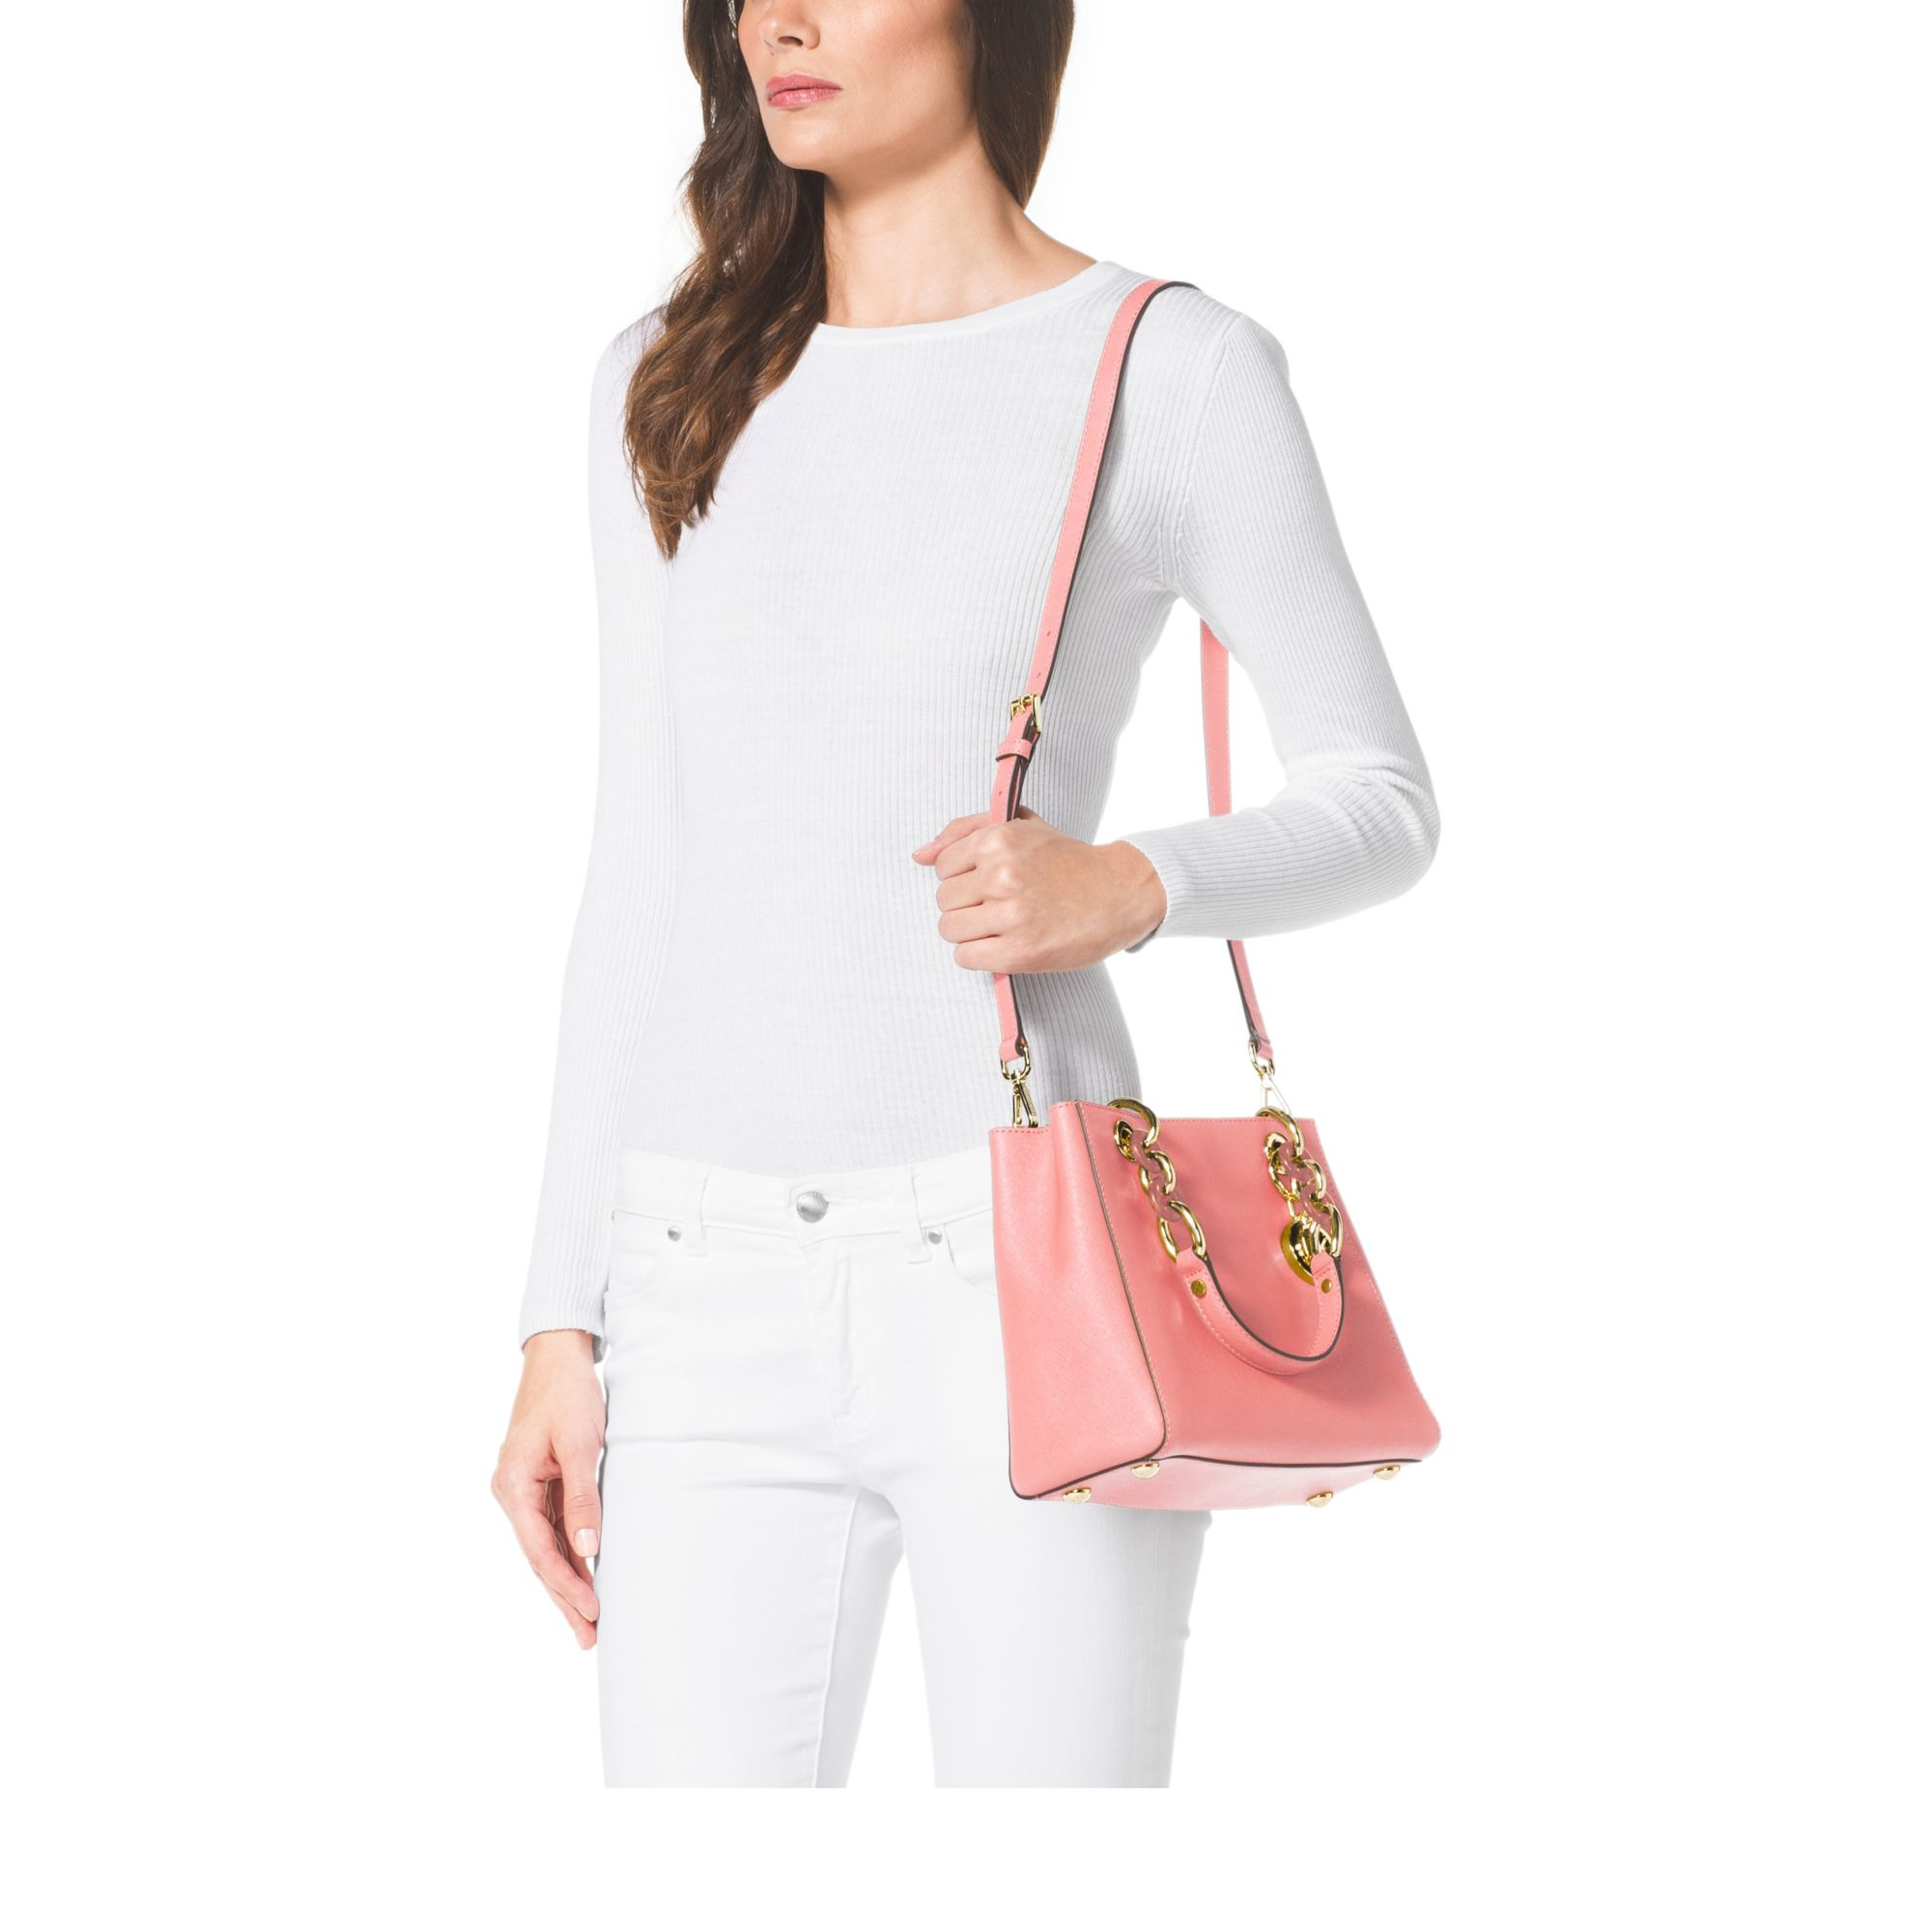 a00b1307f0a063 Michael Kors Cynthia Small Leather Satchel in Pink - Lyst